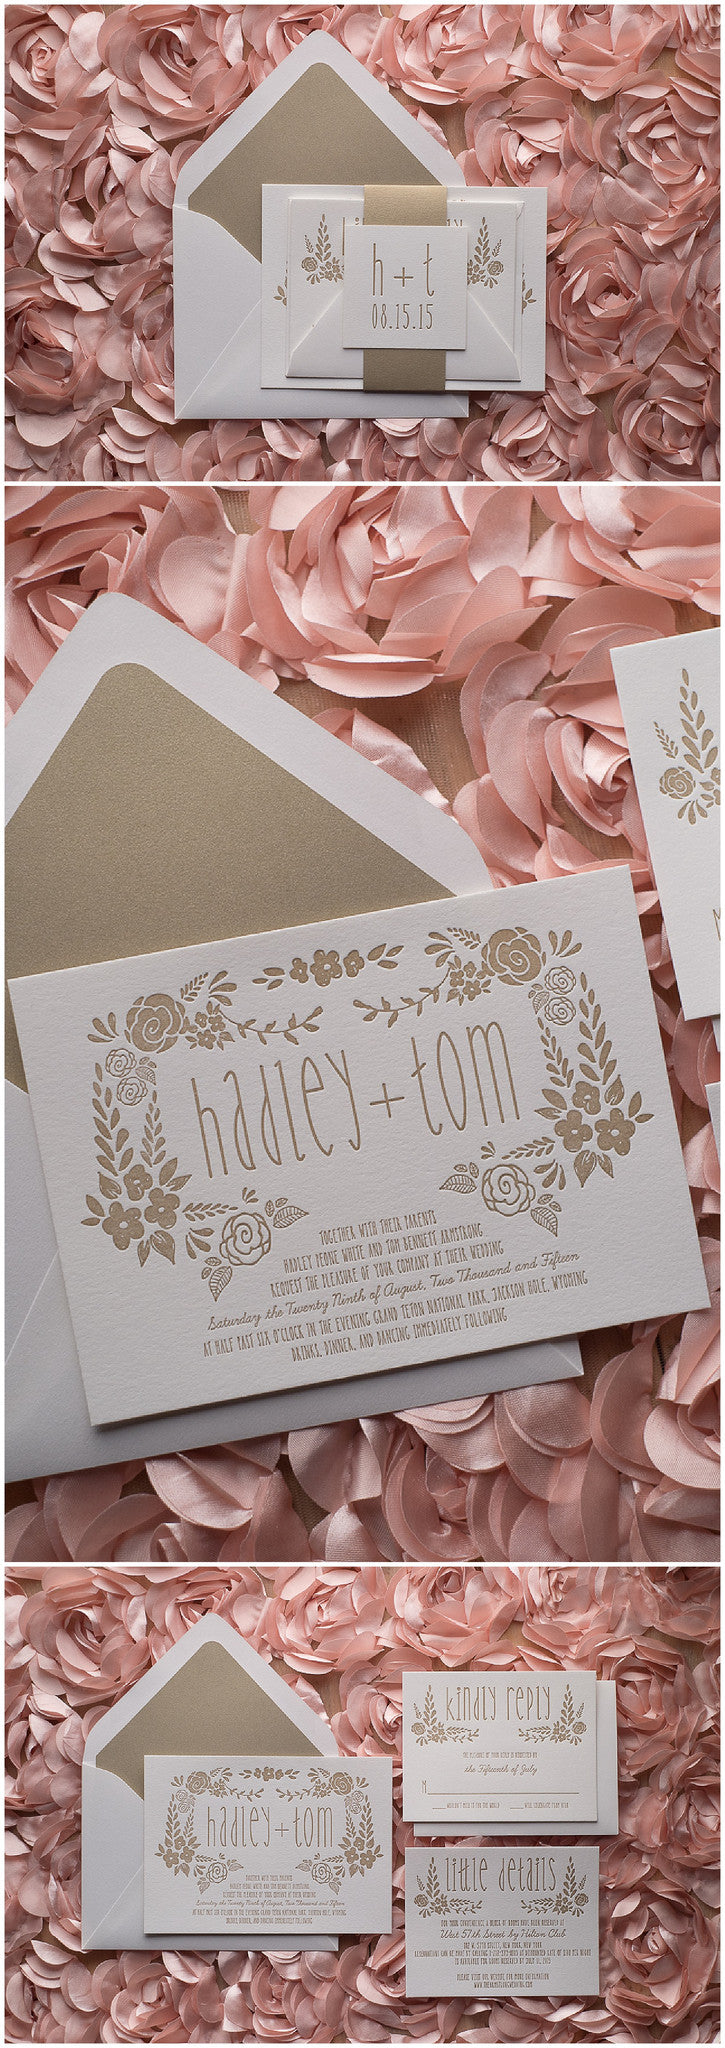 Hadley Suite, Letterpress, Warm Gold, Romantic, Floral Details, White and Gold, Wedding Invitations